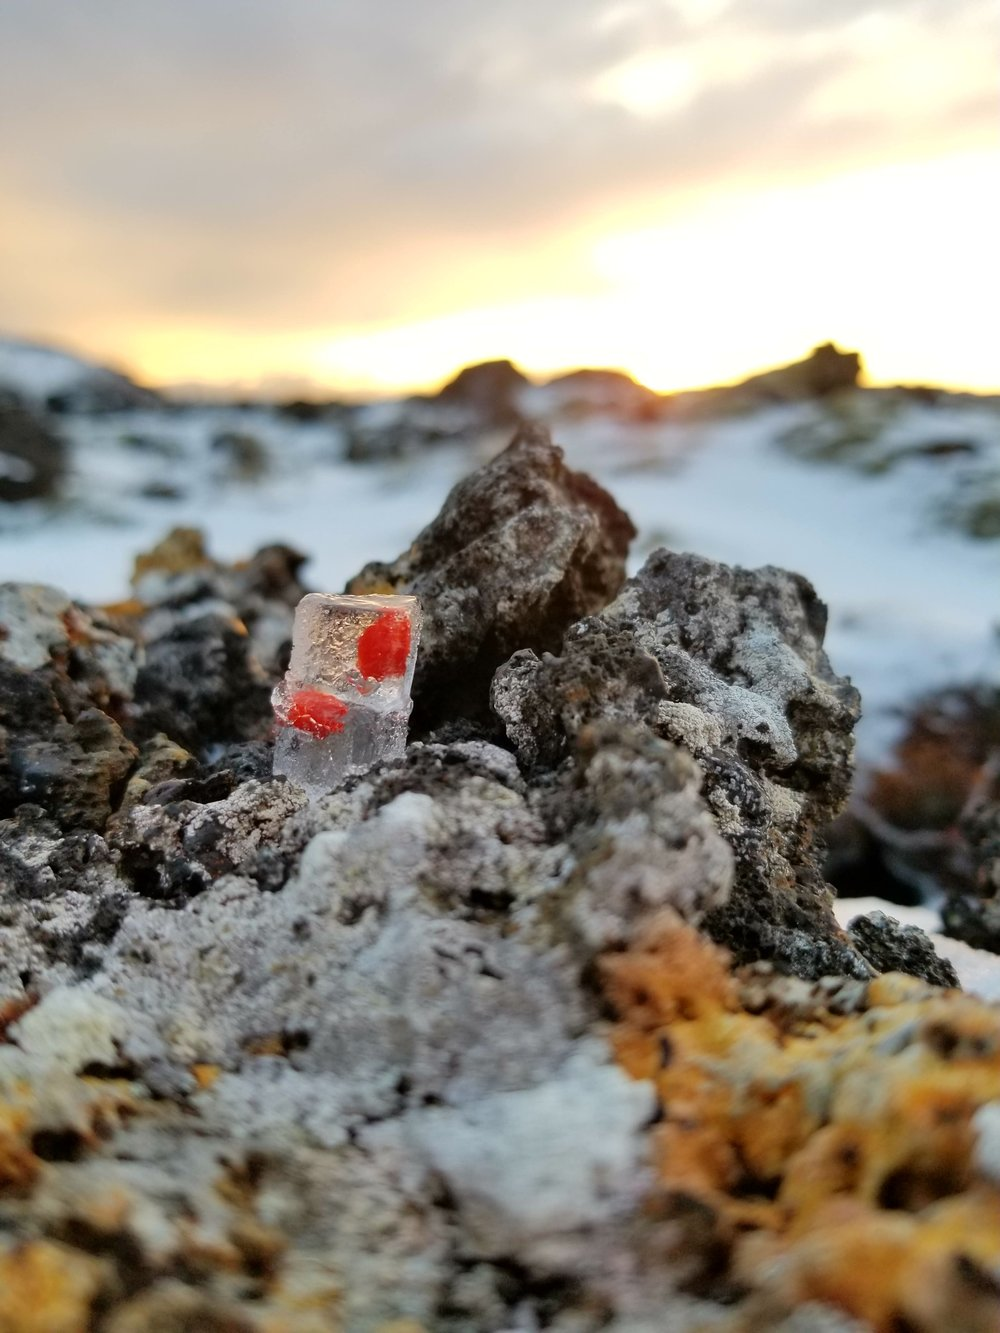 First attempt saved by trial and error, contemplation, experimentation and the incredible arctic light of the autumn sun in Iceland, Nov 2017. Lava rocks and lichen certainly didn't hurt.